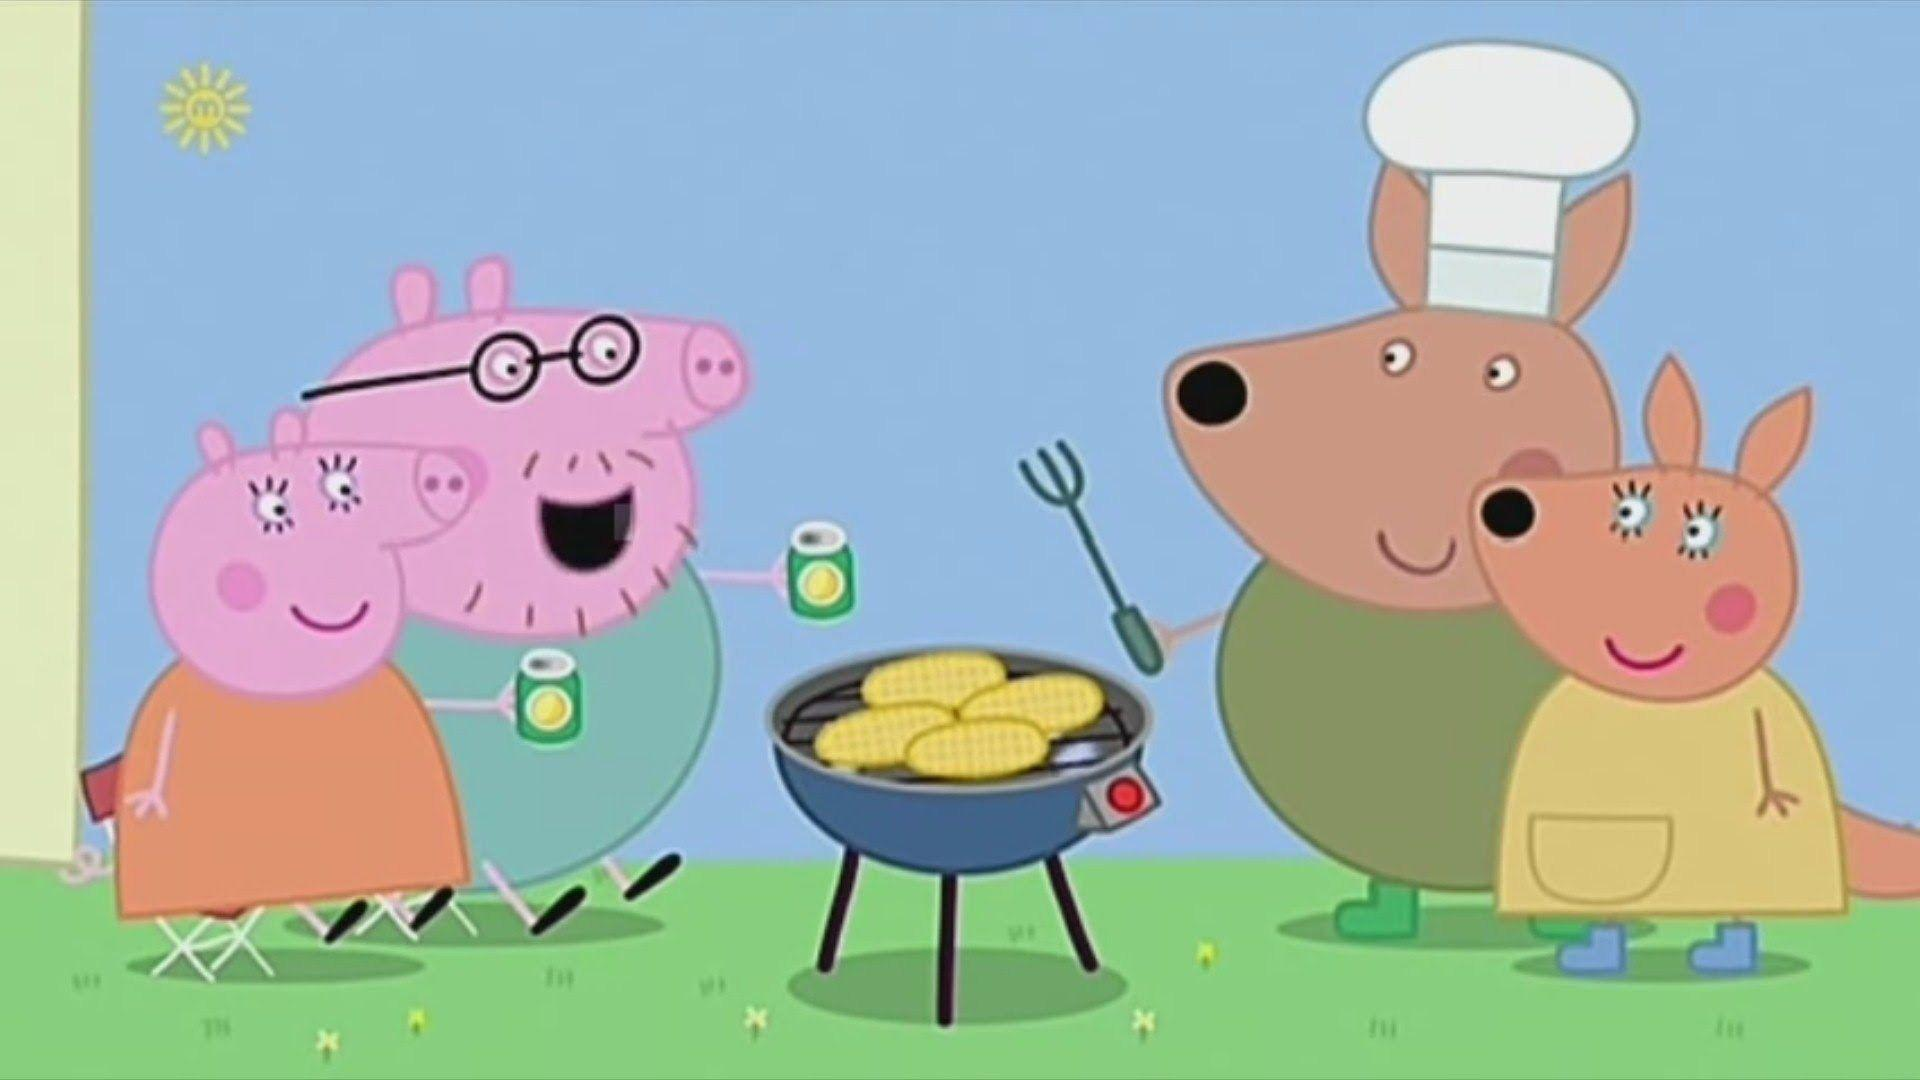 Peppa Pig HD Wallpaper 61 - Download HD Wallpapers